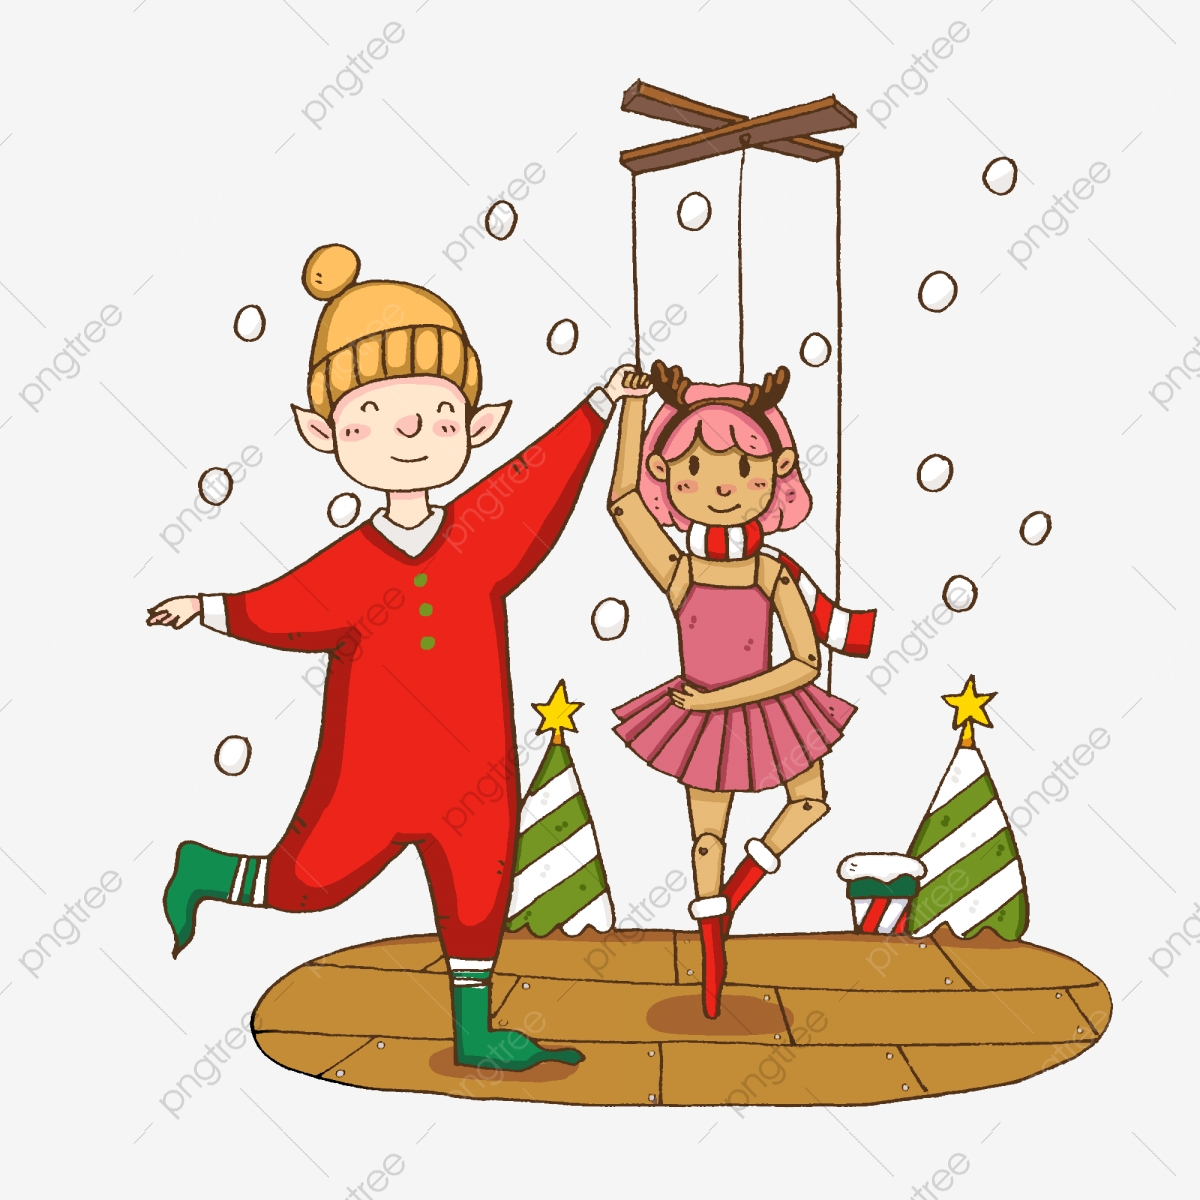 Festival Merry Christmas Joy Dancing Waltz Celebrate Christmas Holiday Illustration Png Transparent Clipart Image And Psd File For Free Download